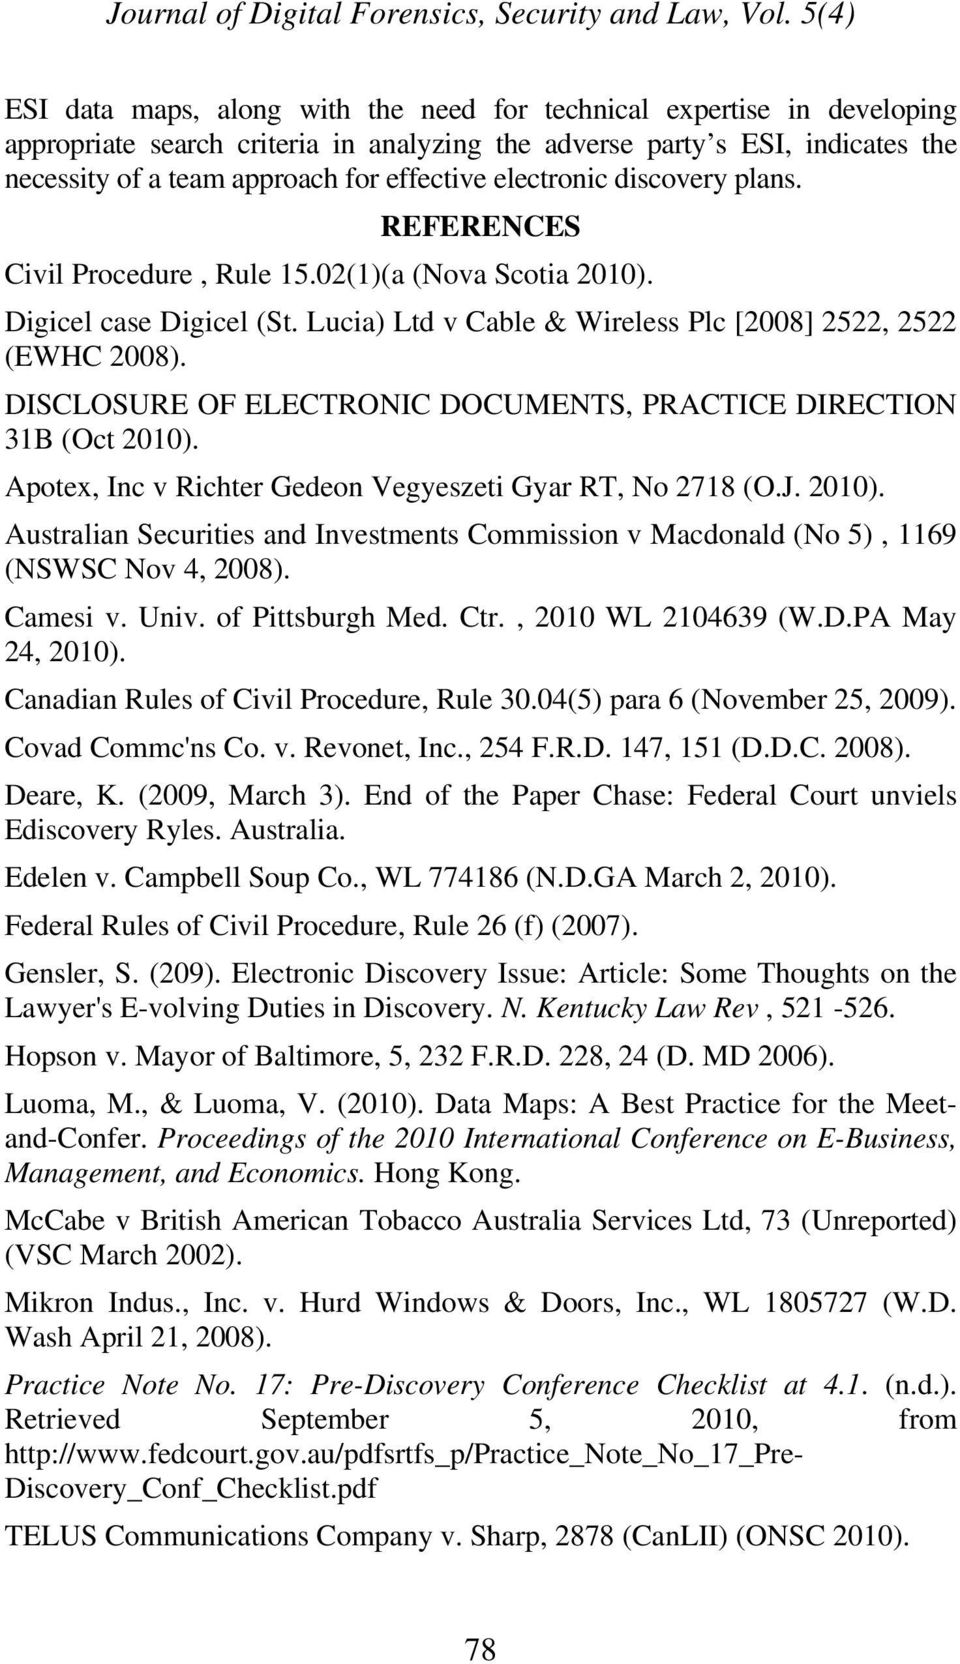 DISCLOSURE OF ELECTRONIC DOCUMENTS, PRACTICE DIRECTION 31B (Oct 2010). Apotex, Inc v Richter Gedeon Vegyeszeti Gyar RT, No 2718 (O.J. 2010). Australian Securities and Investments Commission v Macdonald (No 5), 1169 (NSWSC Nov 4, 2008).